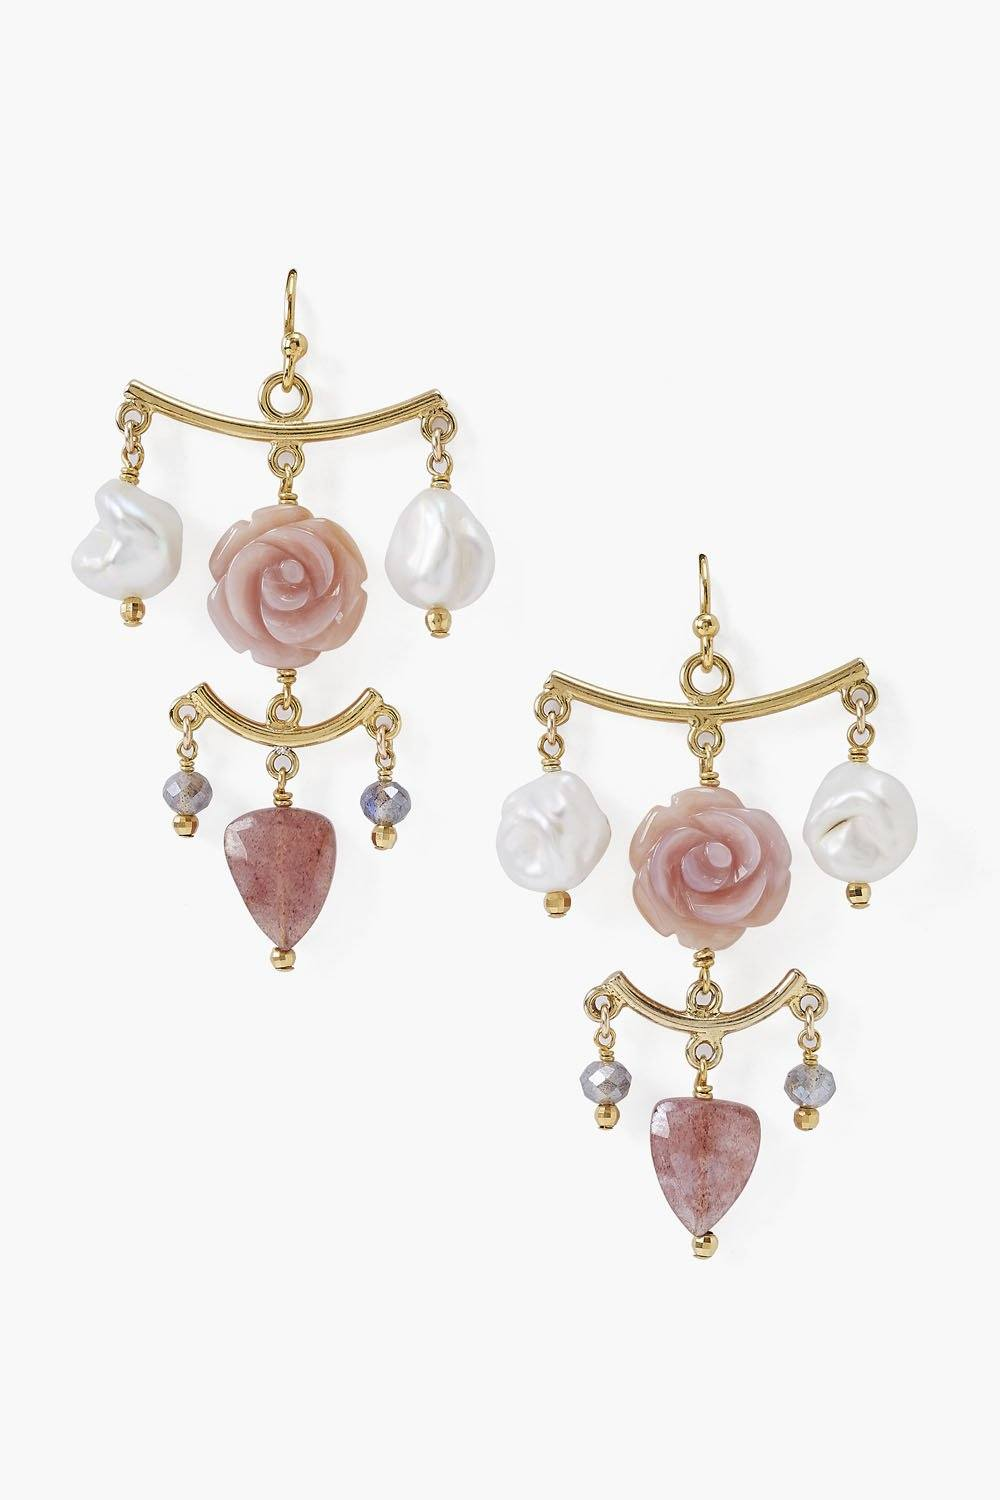 La Rose Chandelier Earrings